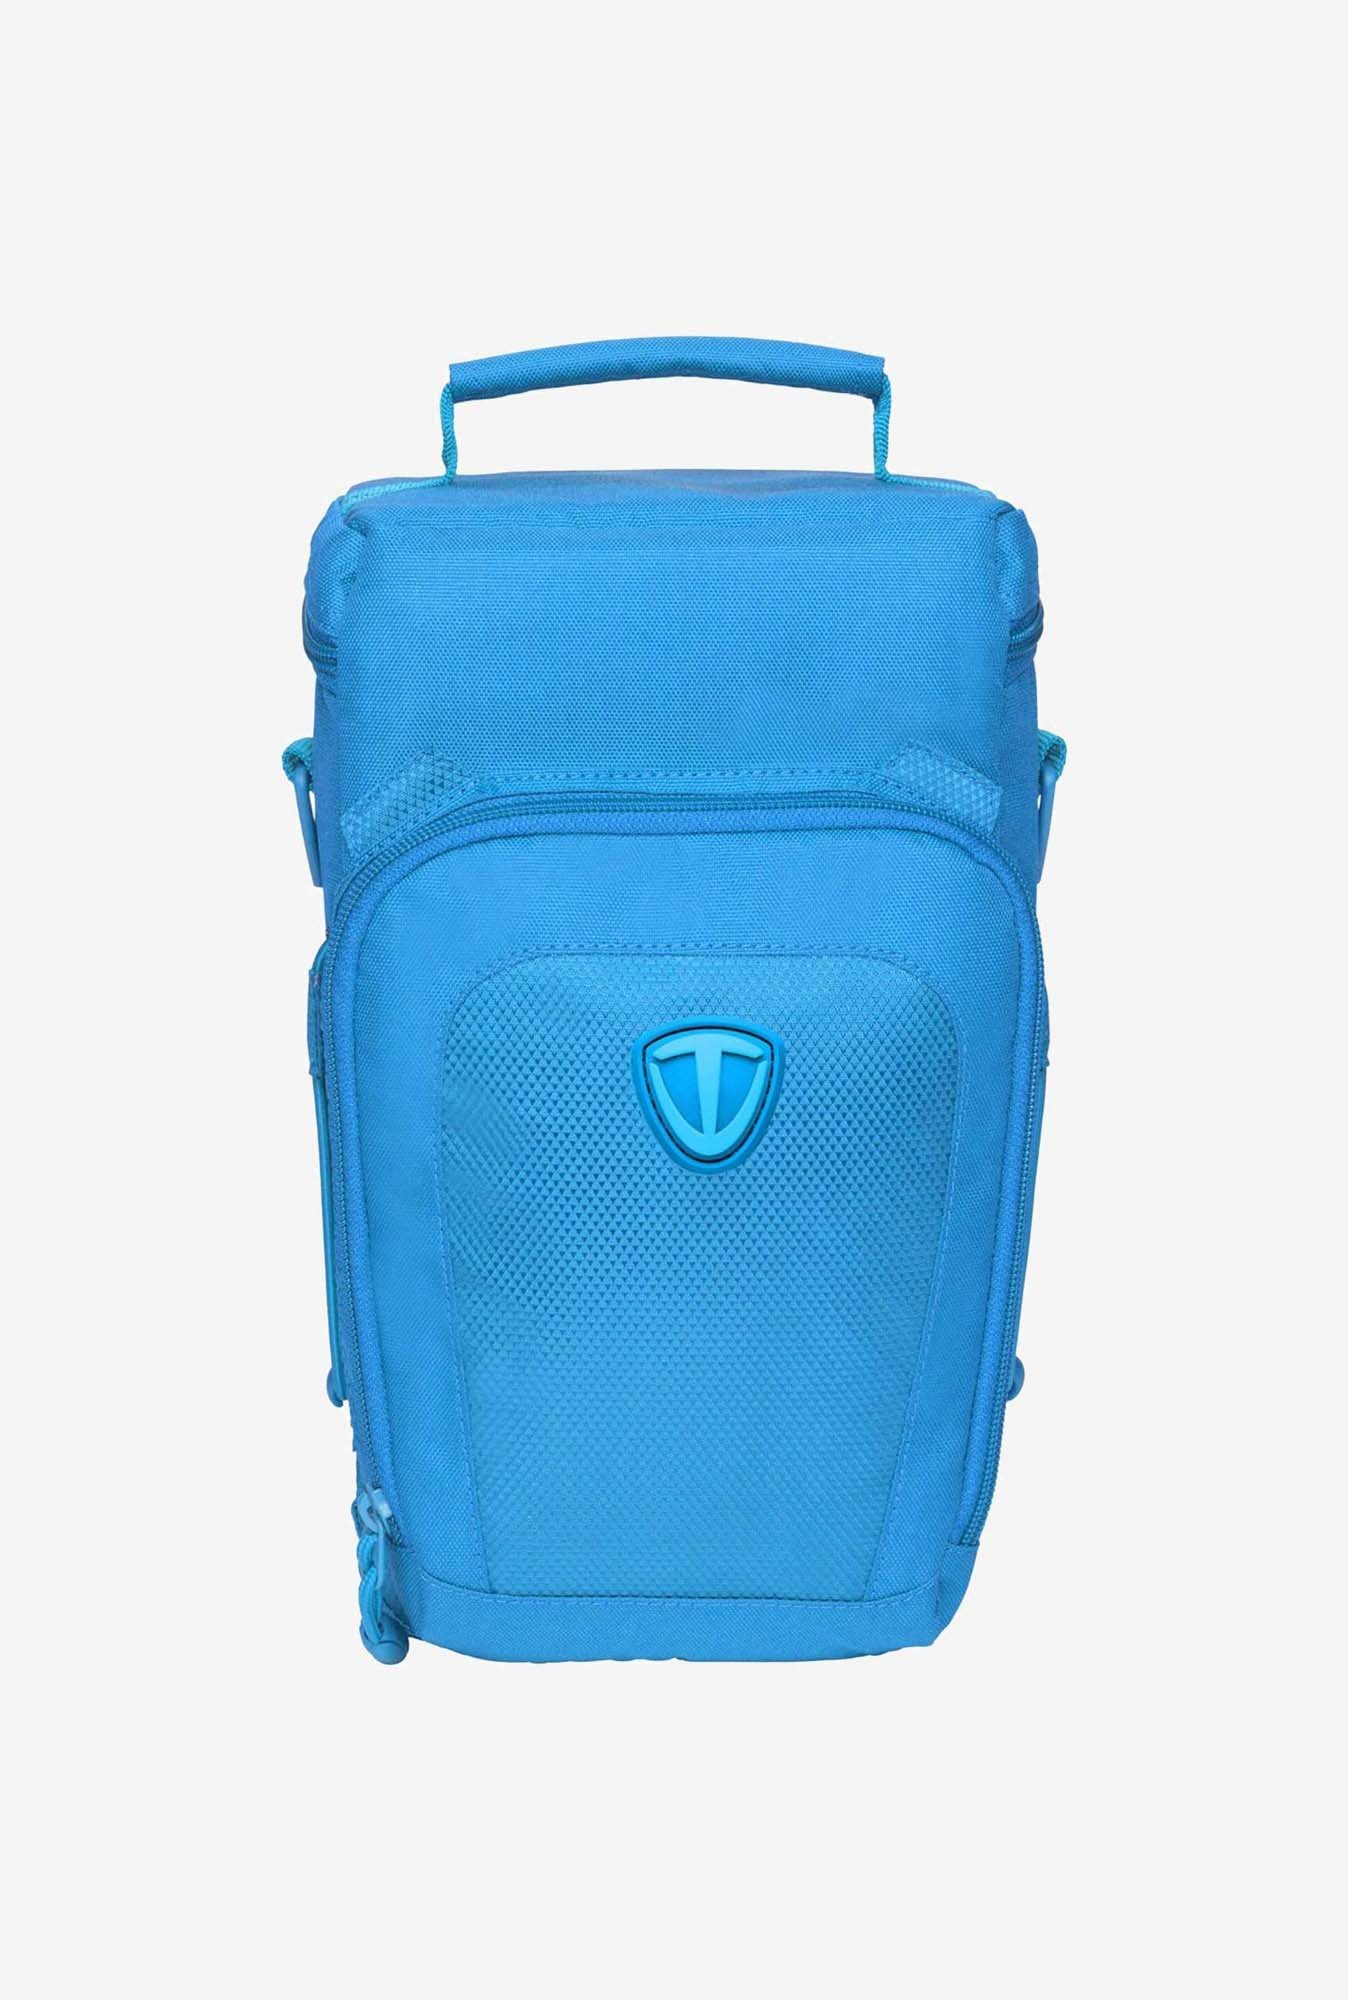 Tenba 637-243 Topload Large (Blue)